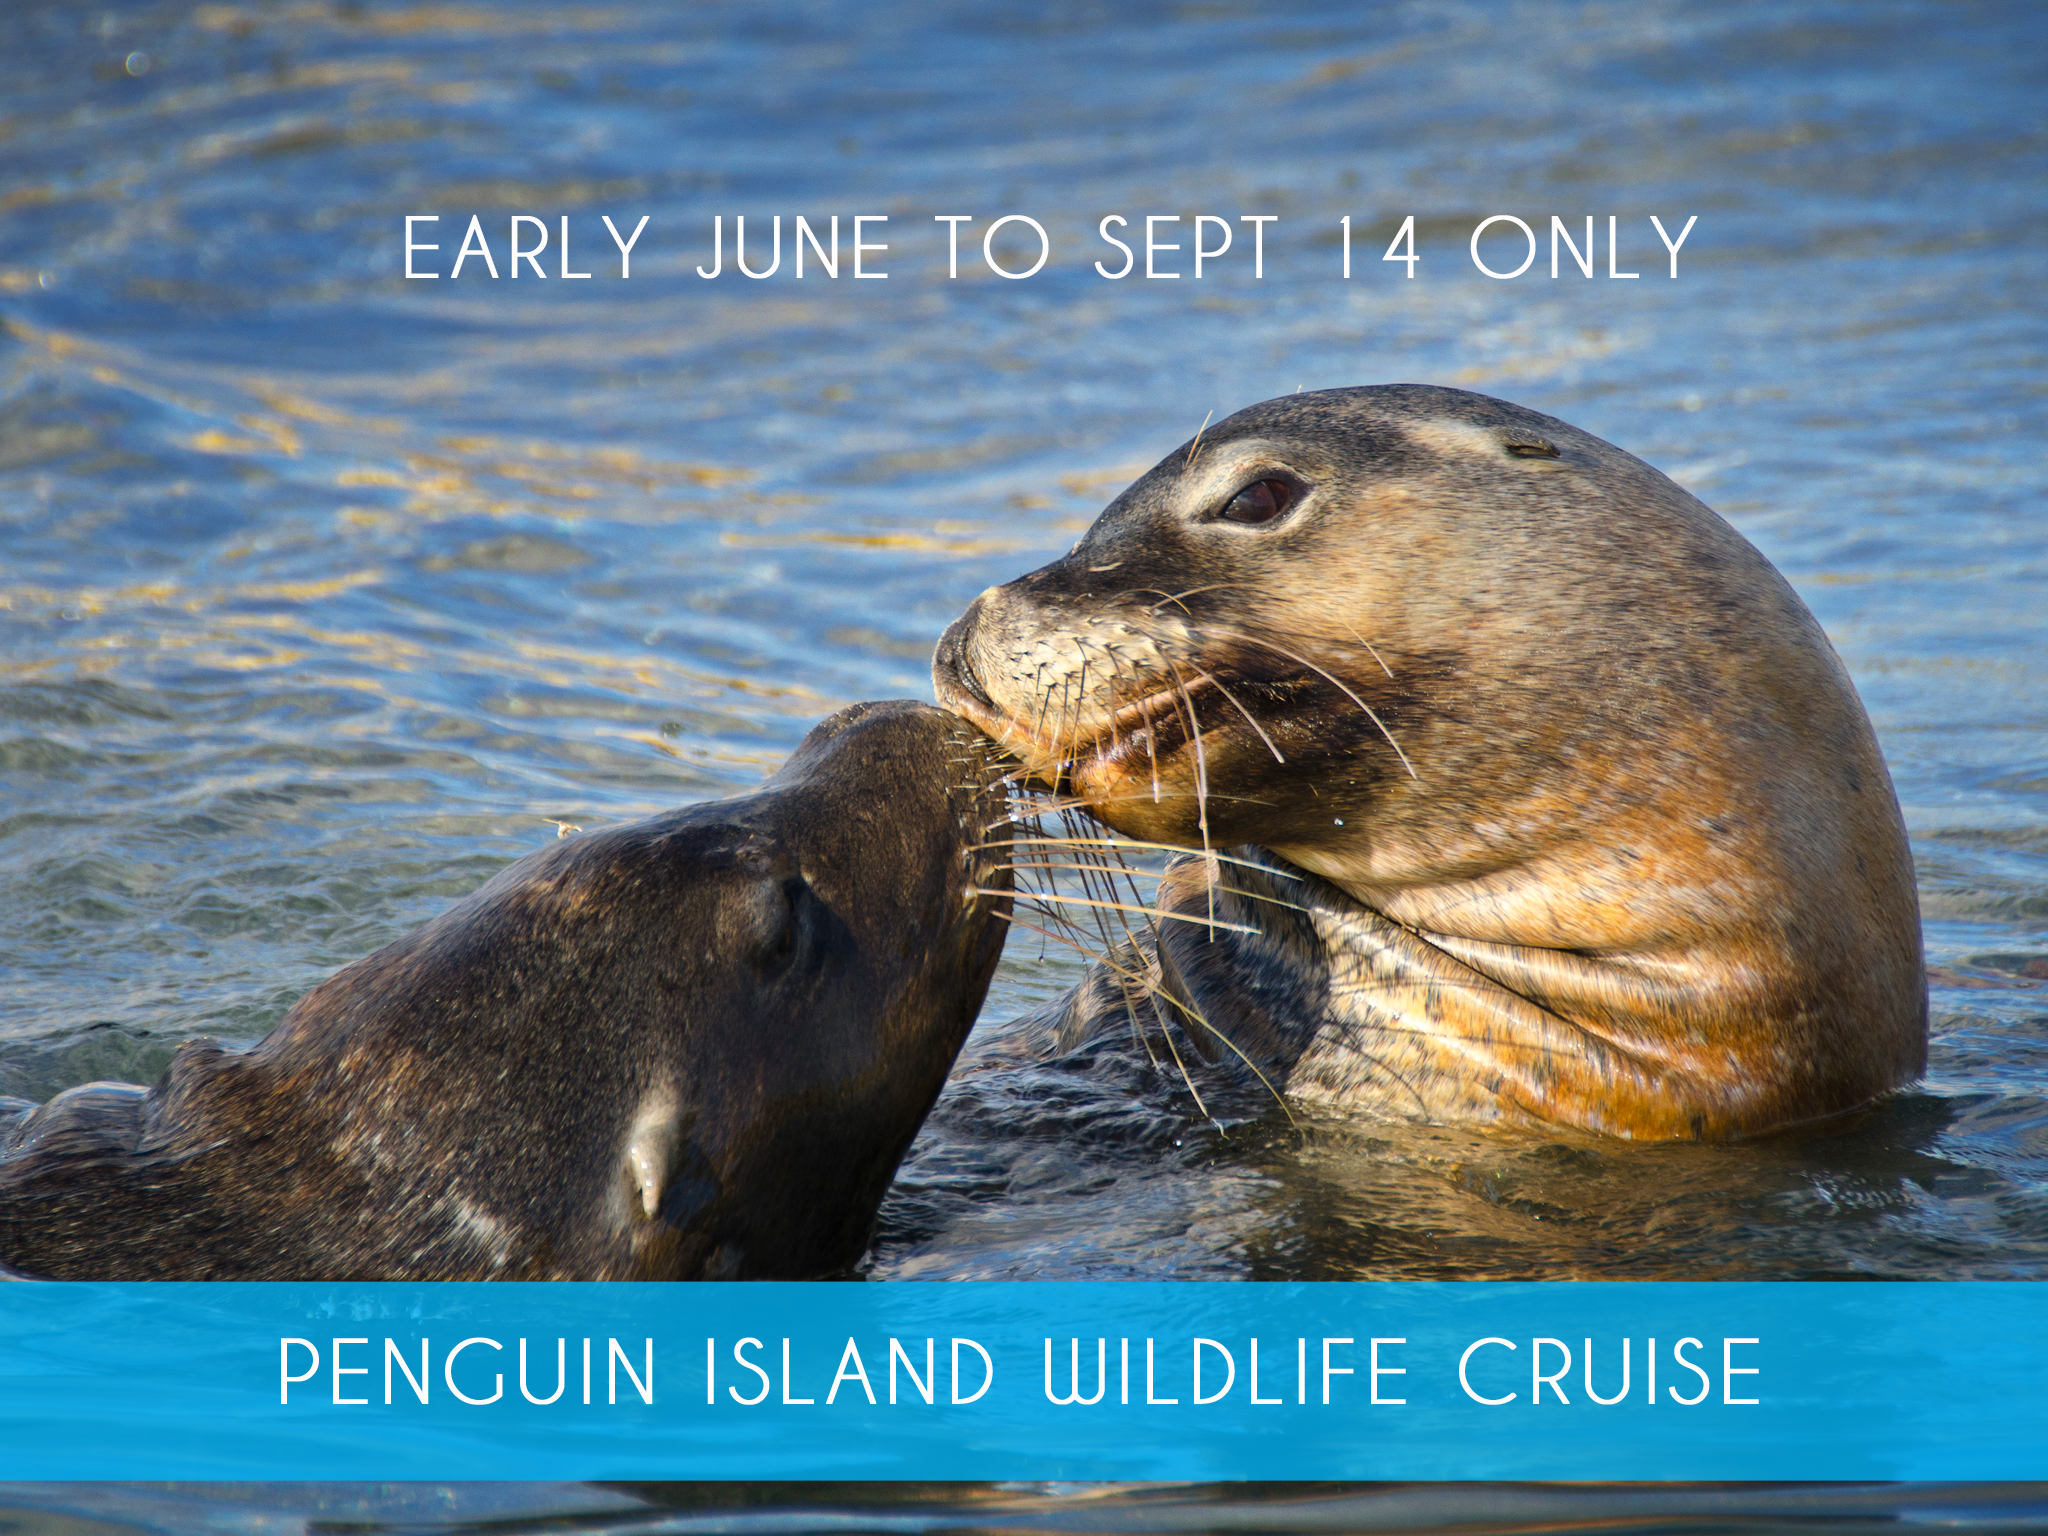 PENGUIN ISLAND WILDLIFE CRUISE  Winter time is penguin nesting season!Enjoy the scenic highlights of the Shoalwater Islands Marine Park and keep a look out for the local wildlife! This 60 minute glass bottom boat cruise takes in the ruggedly spectacular coastlines of Penguin, Seal & Bird Islands and a 30 minuted guided walk on Penguin Island.    Adults from $39   MORE INFO